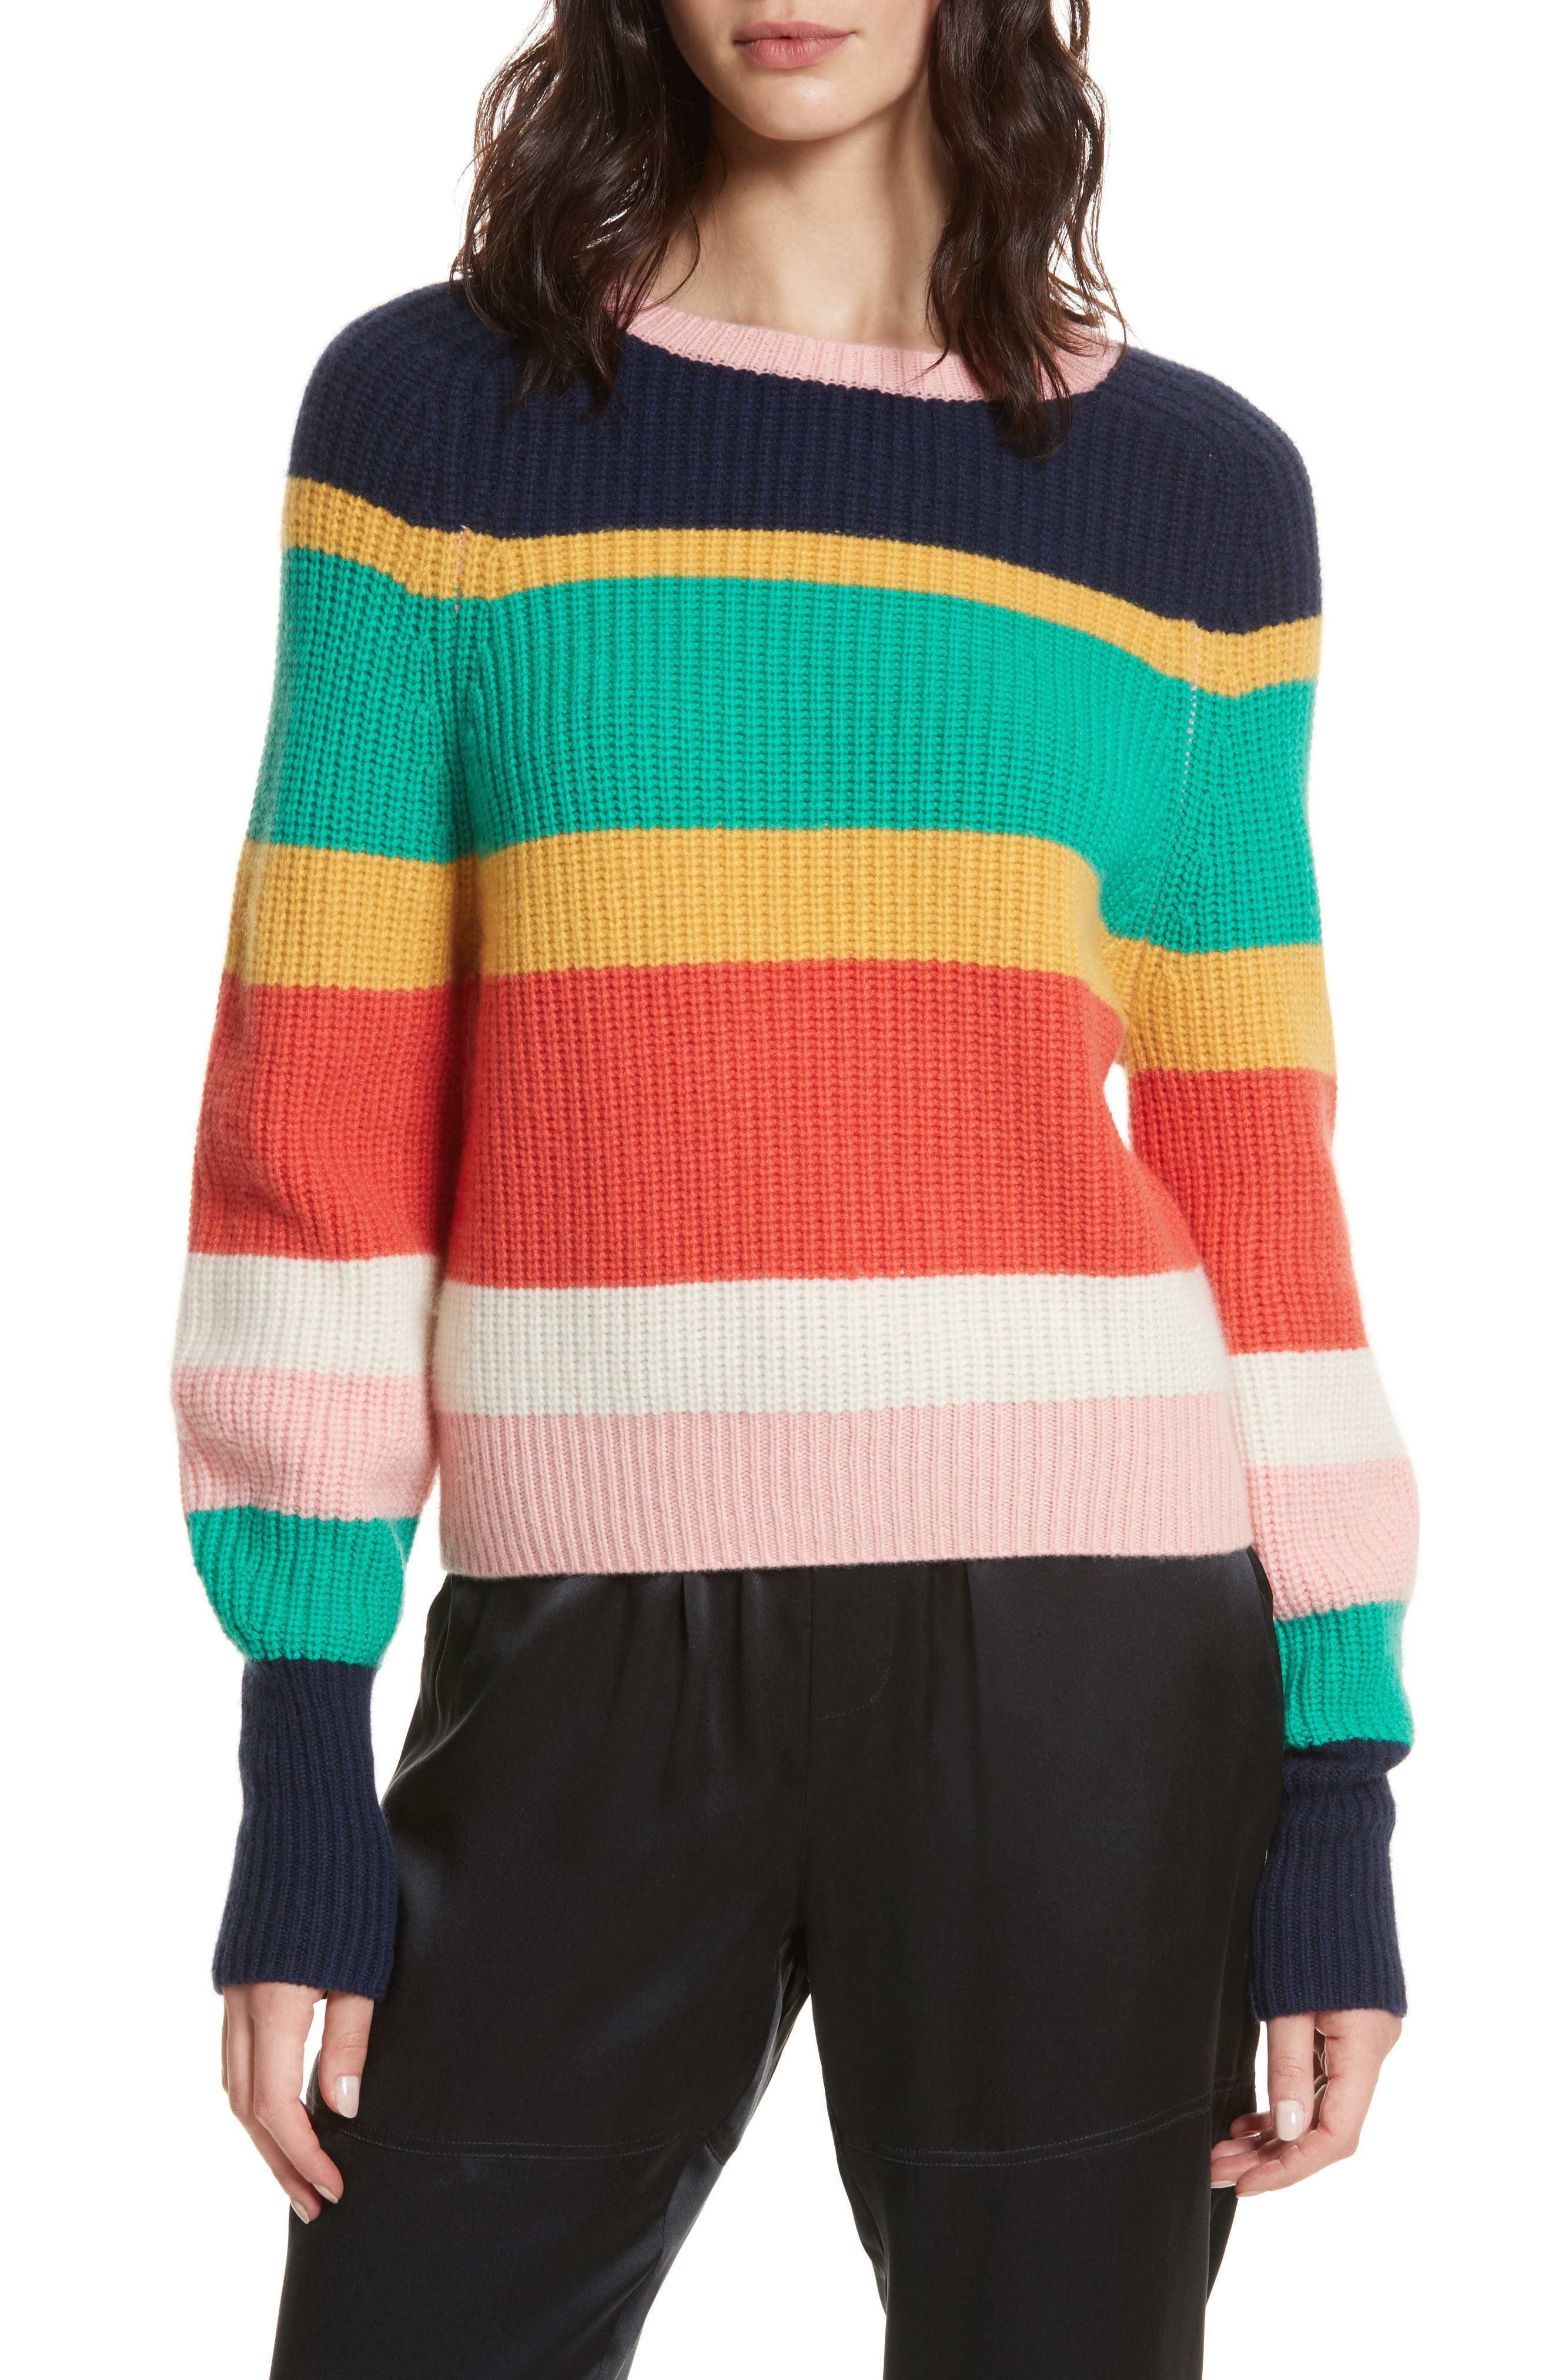 Haady Stripe Wool & Cashmere Sweater,                             Main thumbnail 1, color,                             Multi Stripe